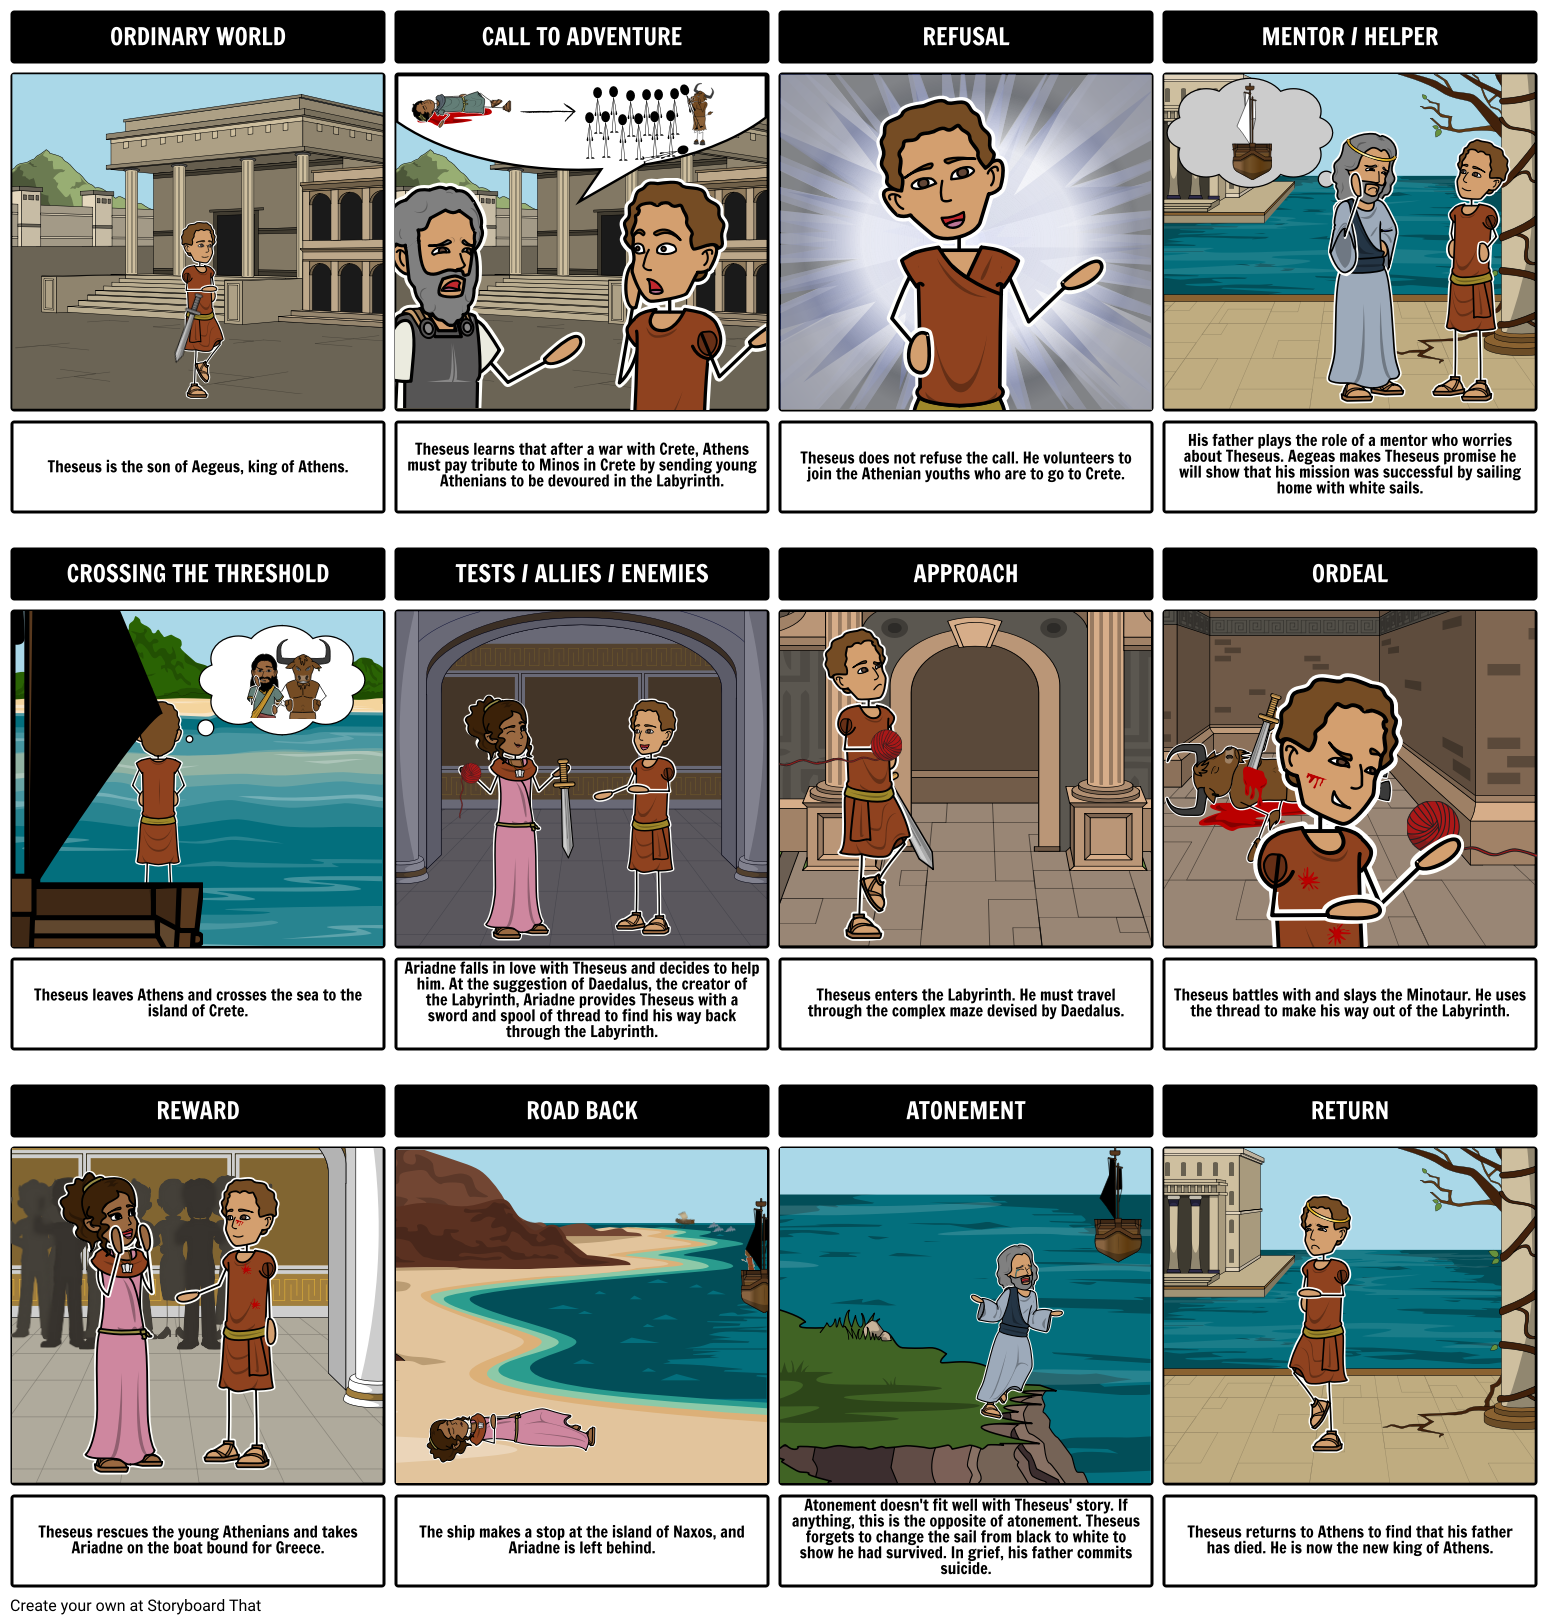 mythology summary and analysis greek mythology Many fairy tales share basic elements with classical myths  so feel free to join  our exploration of old greek and roman myths with brief summaries  click  here to visit our frequently asked questions about html5 video.